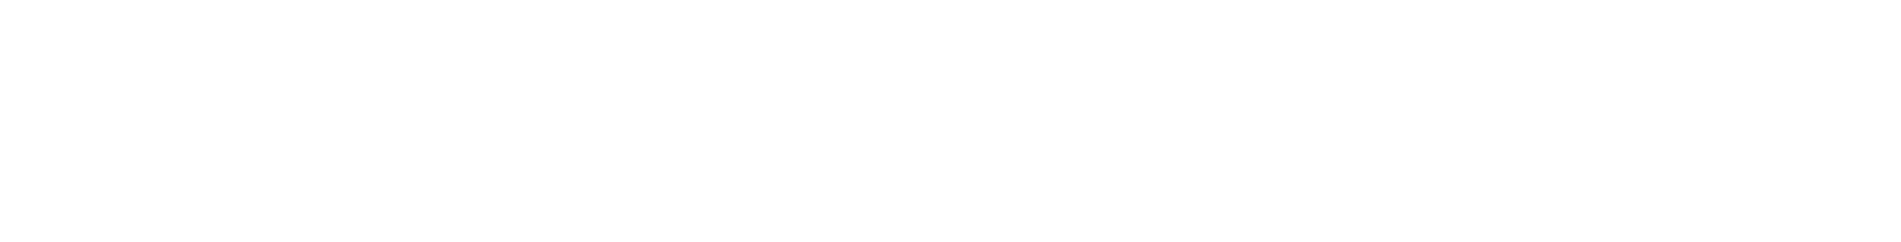 Jeff Denaro U.S. Congress House  N.H. District 1